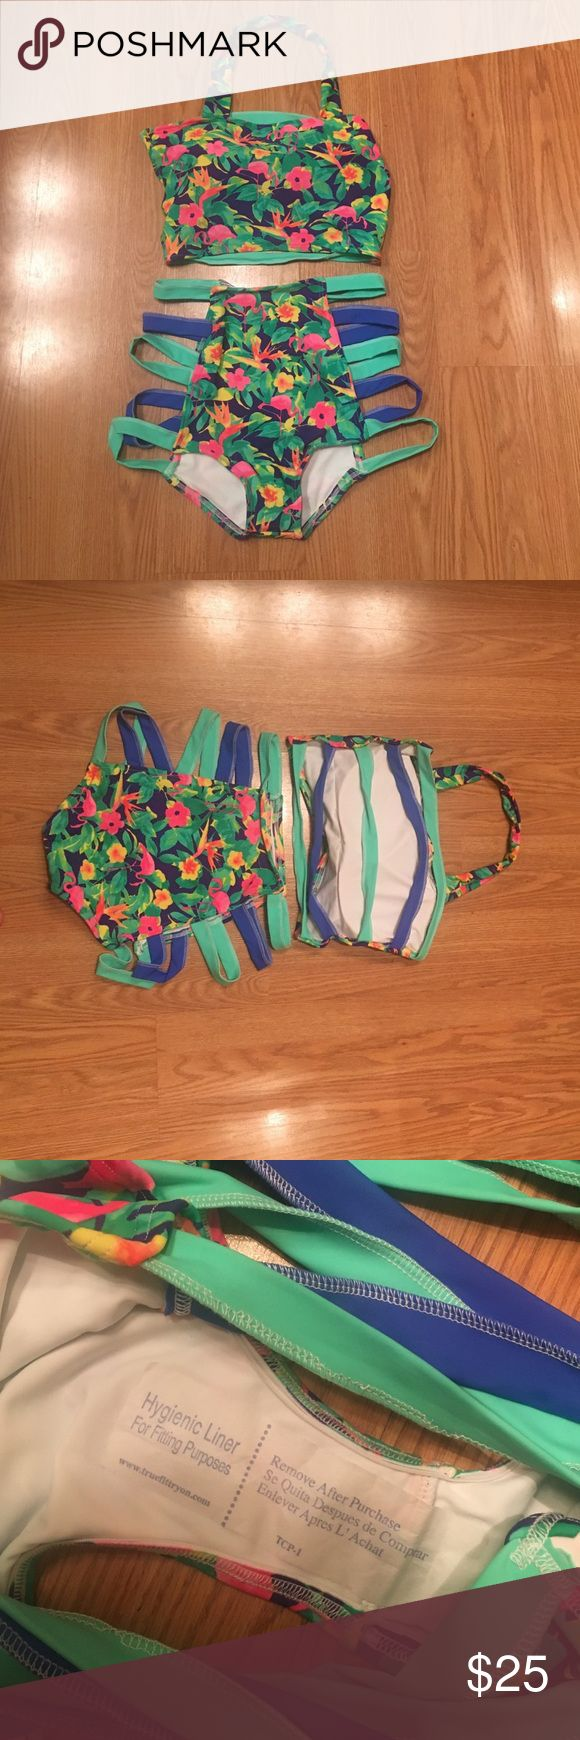 Beverly Swimwear High Waisted Bikini NWOT. Never been worn. Handmade high quality swimwear from Beverly Swimwear. Retails at $90. Has removable cups. Size medium. True to size. Beverly Swimwear Swim Bikinis